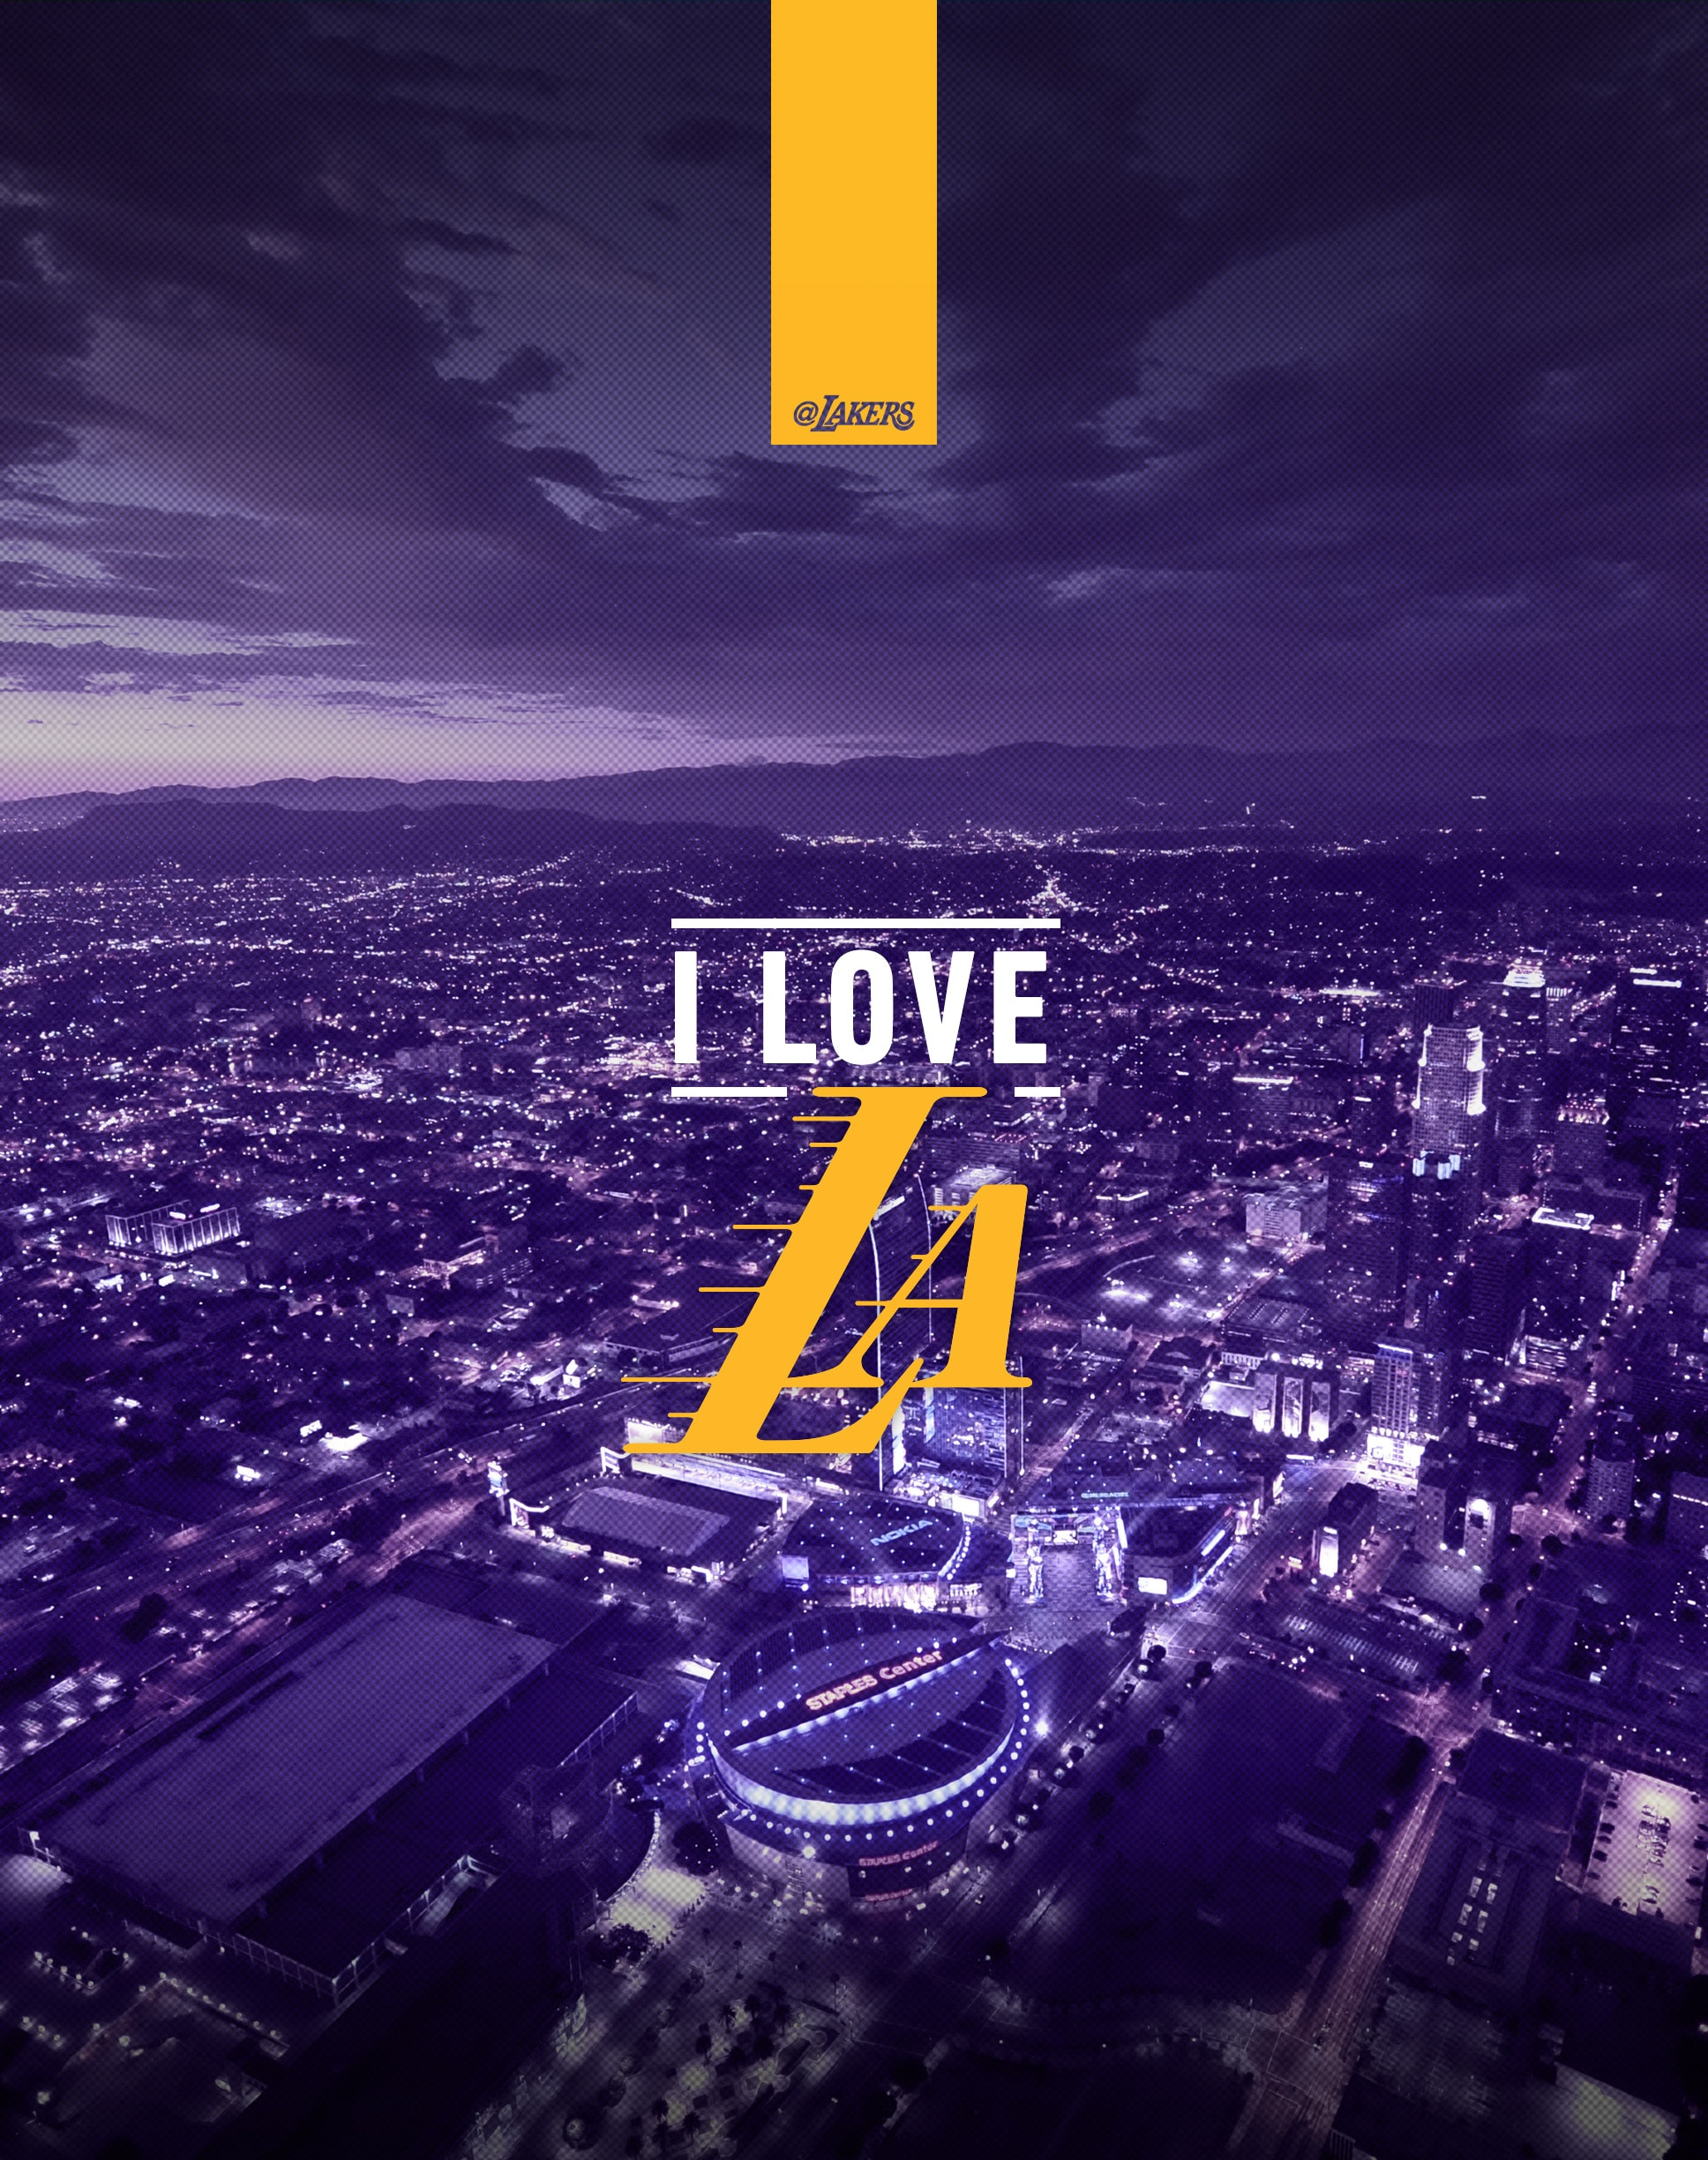 Los Angeles Lakers Wallpaper Hd Lakers Wallpapers And Infographics Los Angeles Lakers